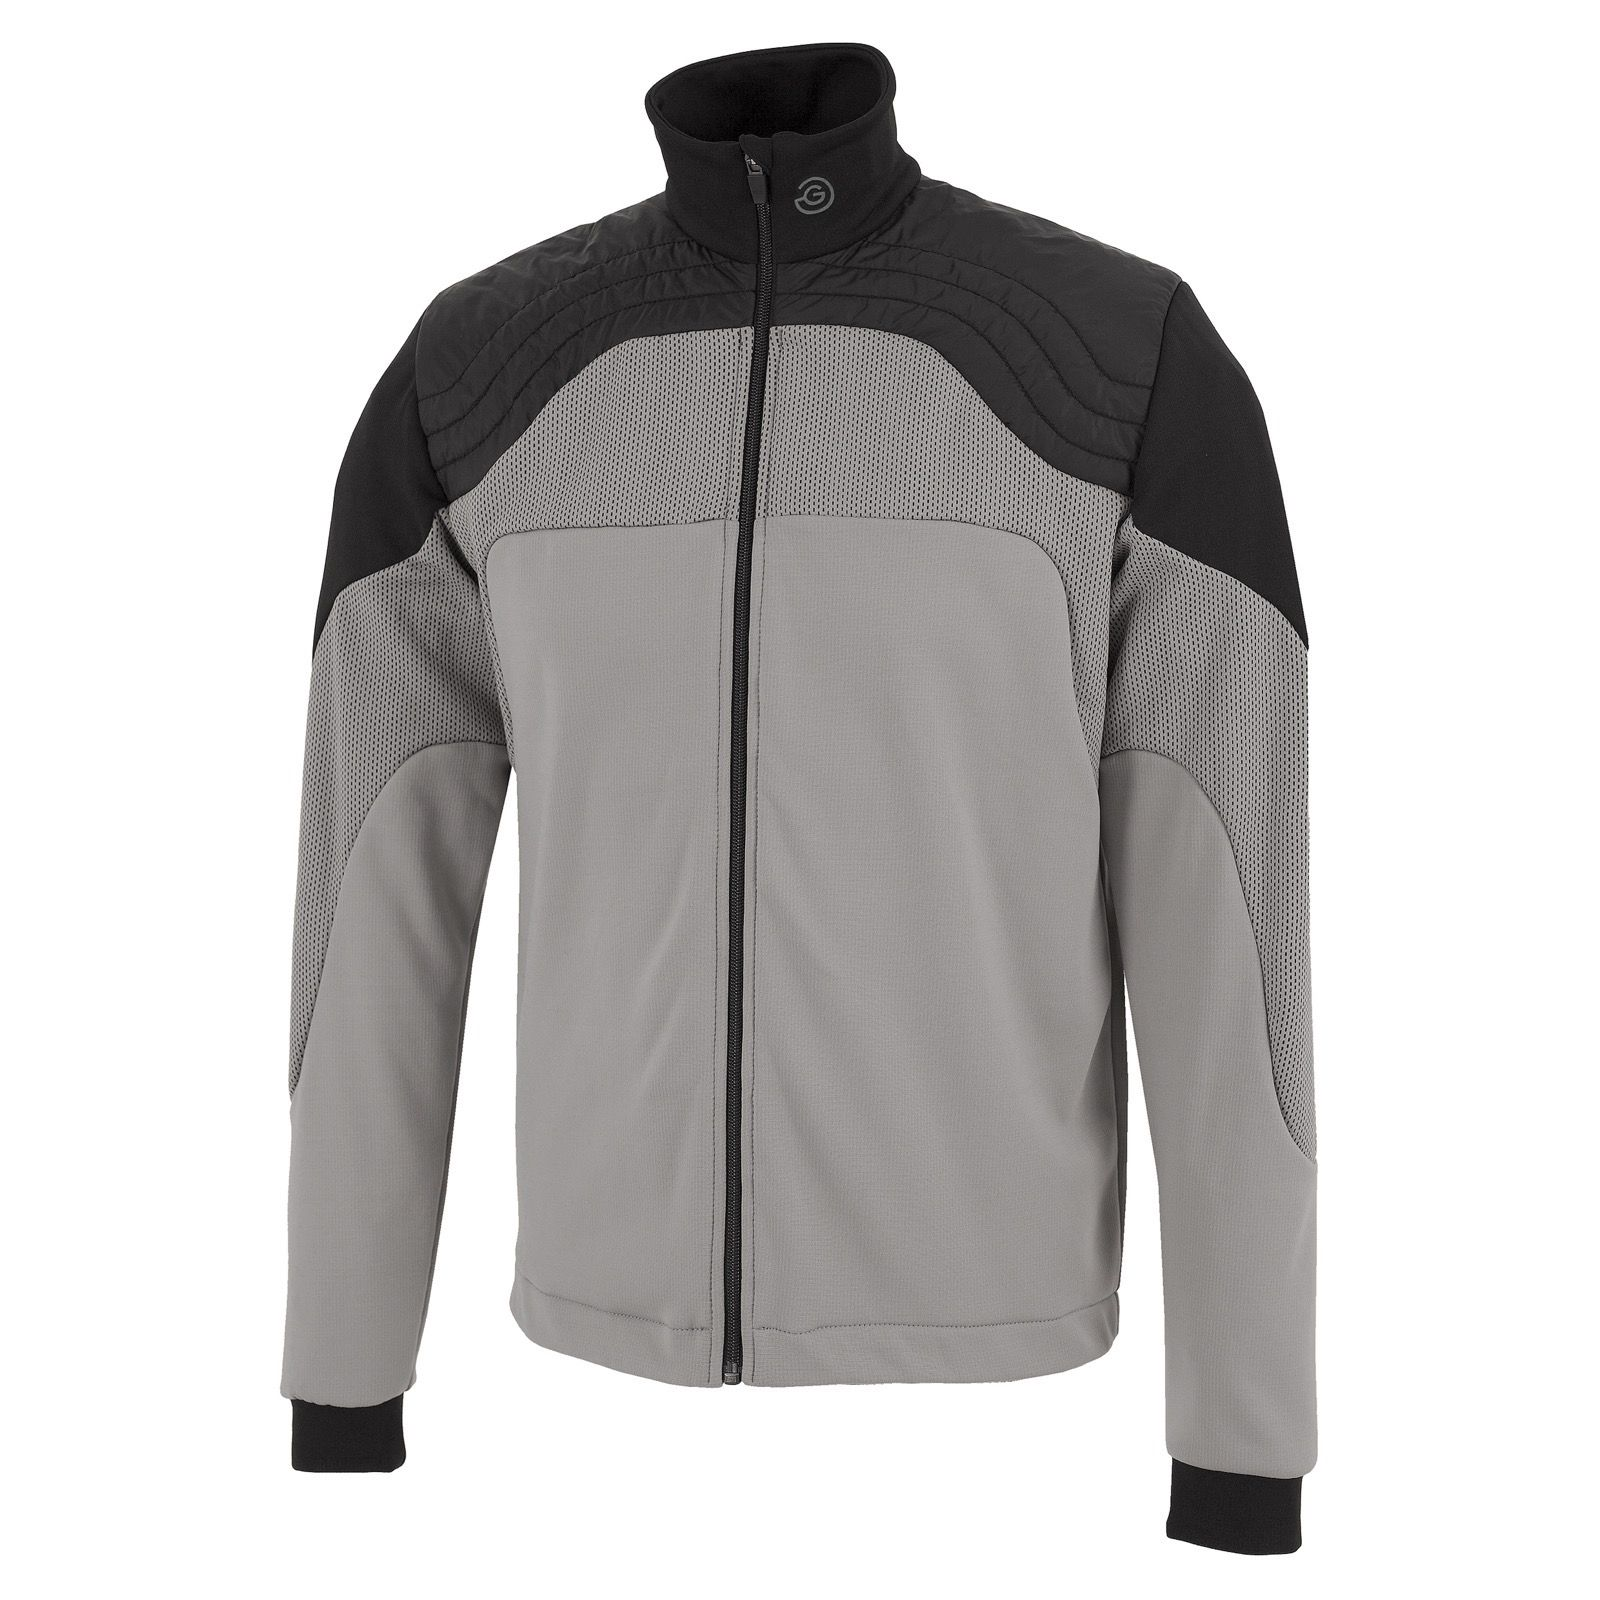 Image of Galvin Green Don Insula Jacket